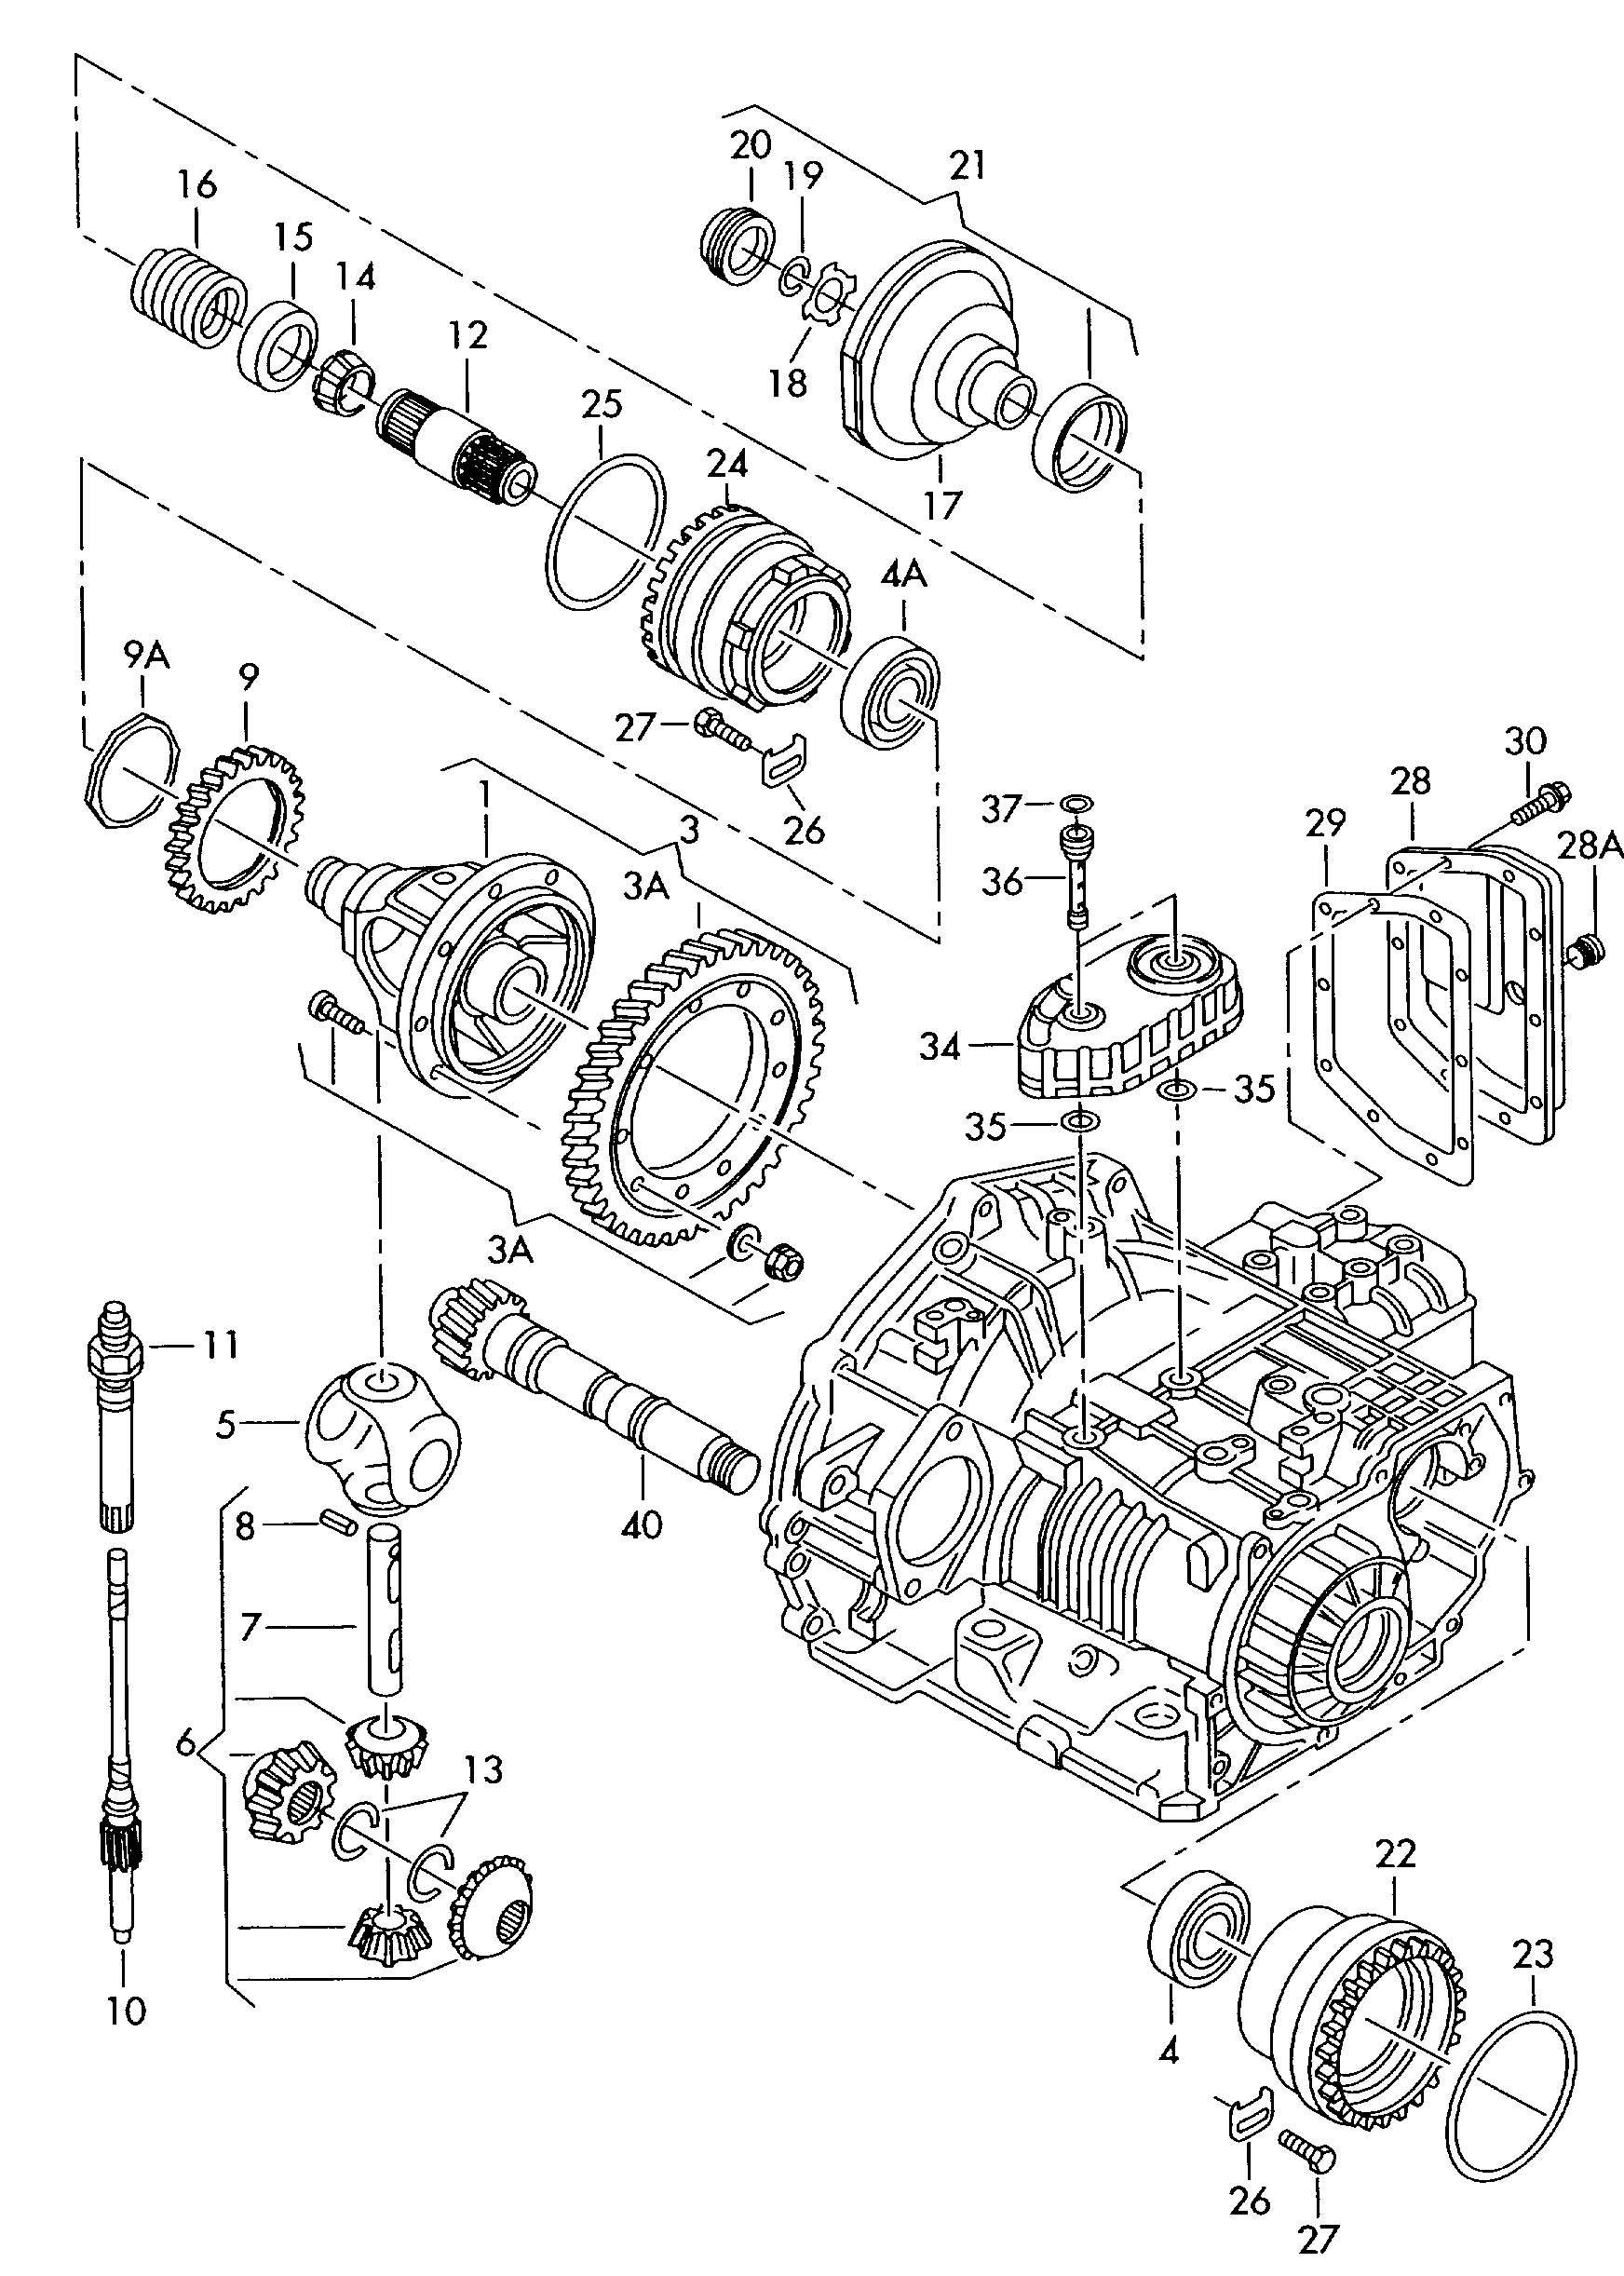 2002 vw passat automatic transmission imageresizertool com 2004 pontiac  vibe fuse diagram